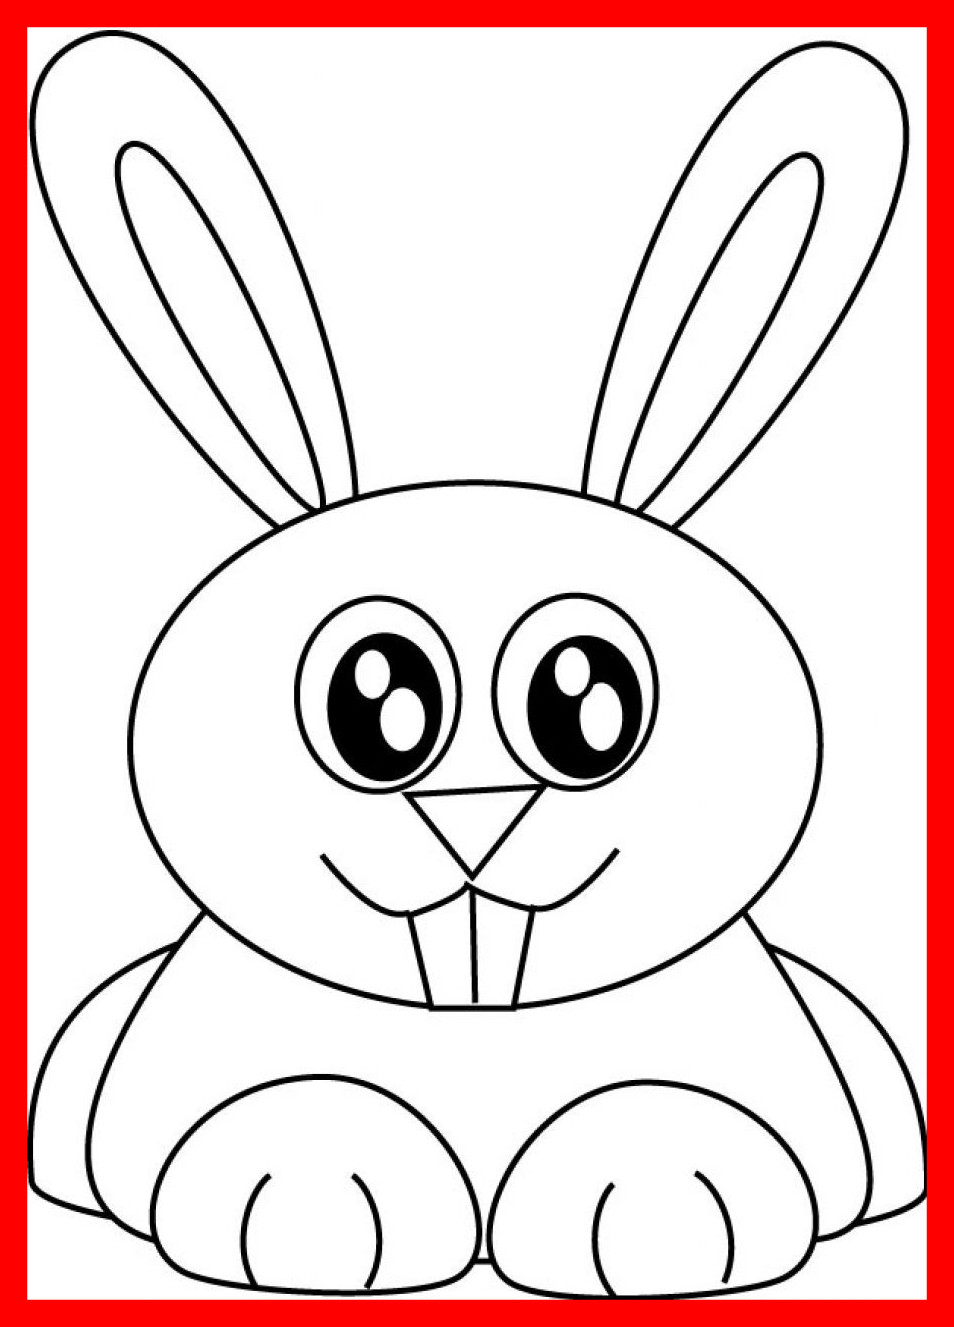 954x1327 Appealing Bunny Rabbit Coloring Pages With Background Pics